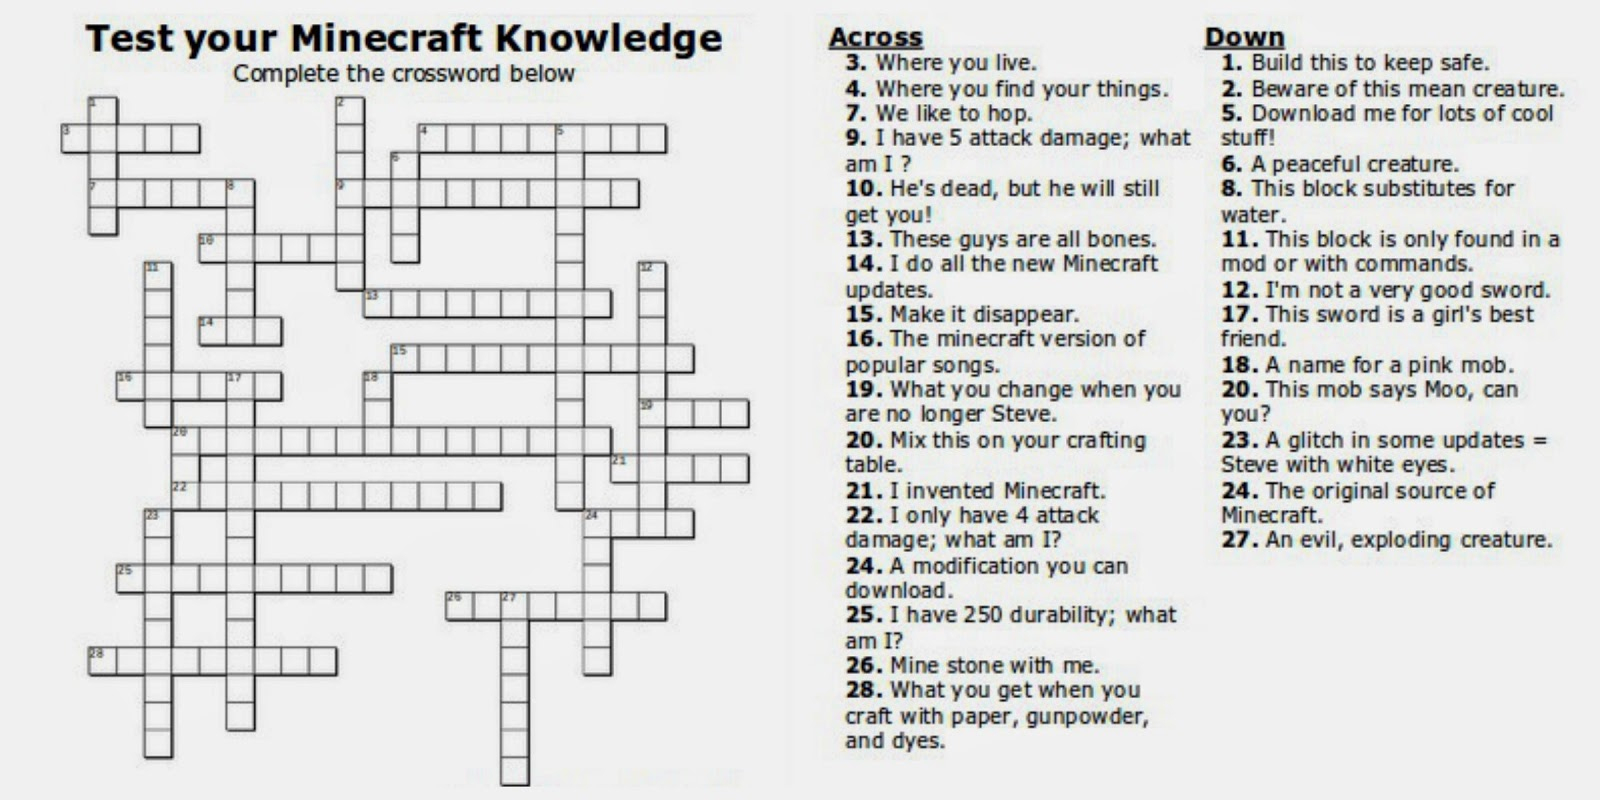 Free Printable Minecraft Crossword Search: Test Your Minecraft - Free Printable Minecraft Activity Pages